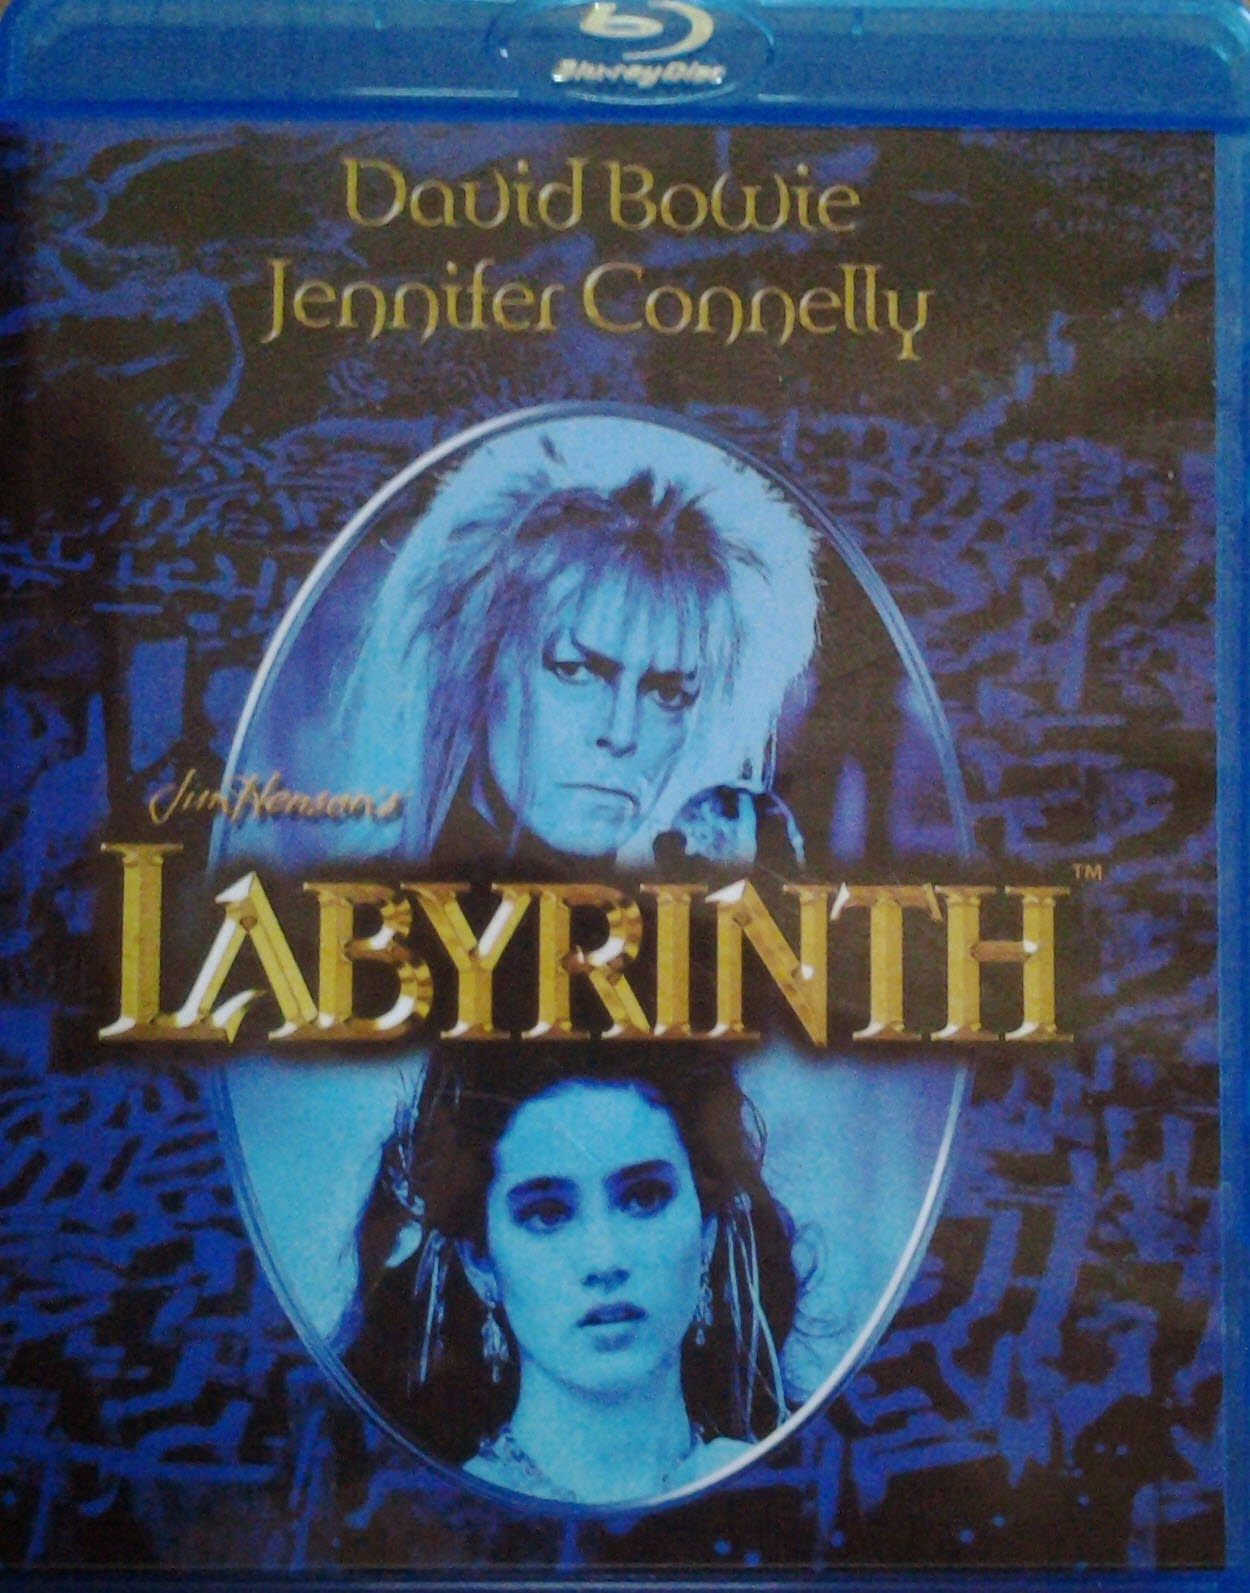 DVD Cover - Labyrinth